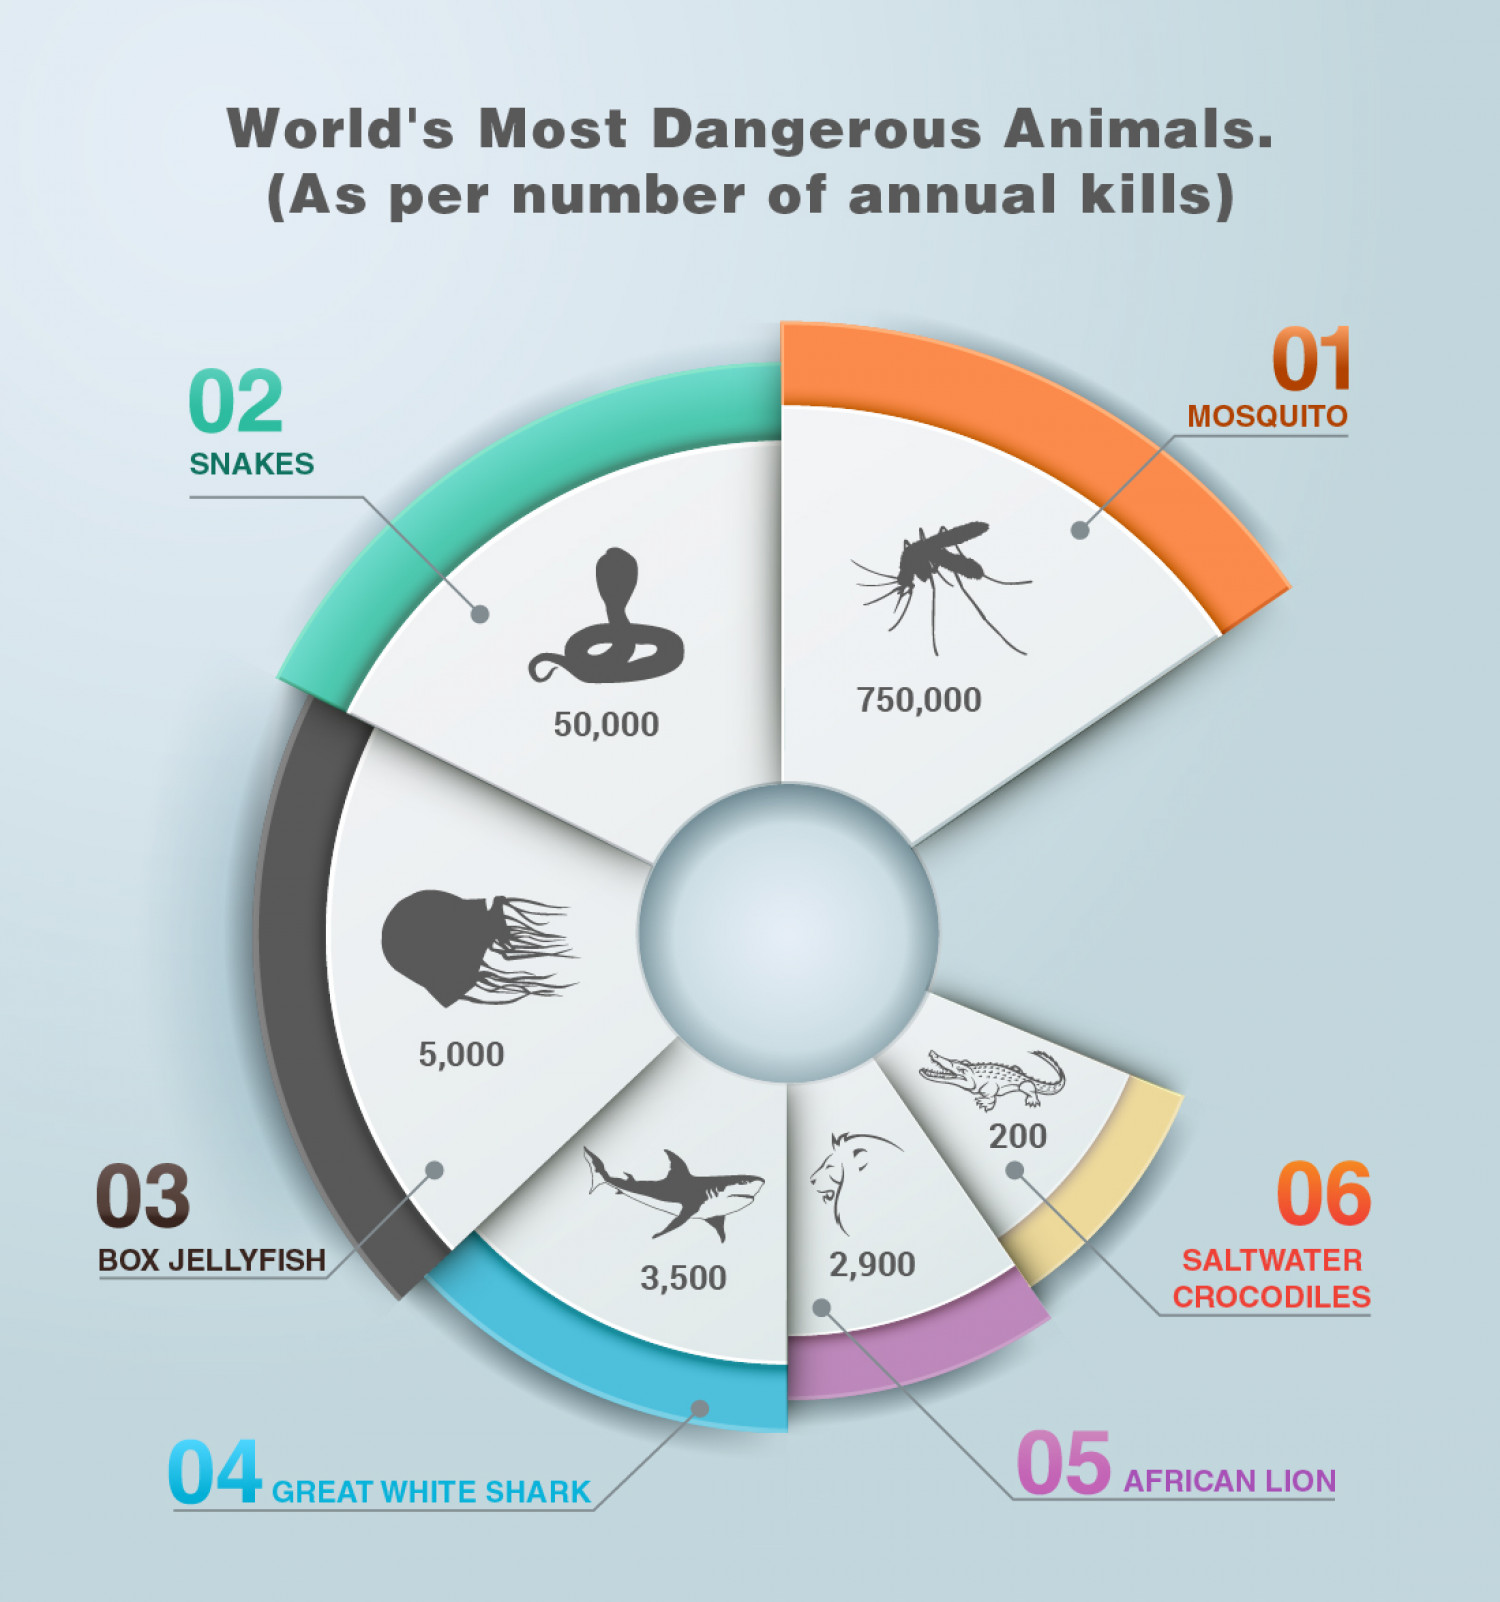 World's Most Dangerous Animals Infographic